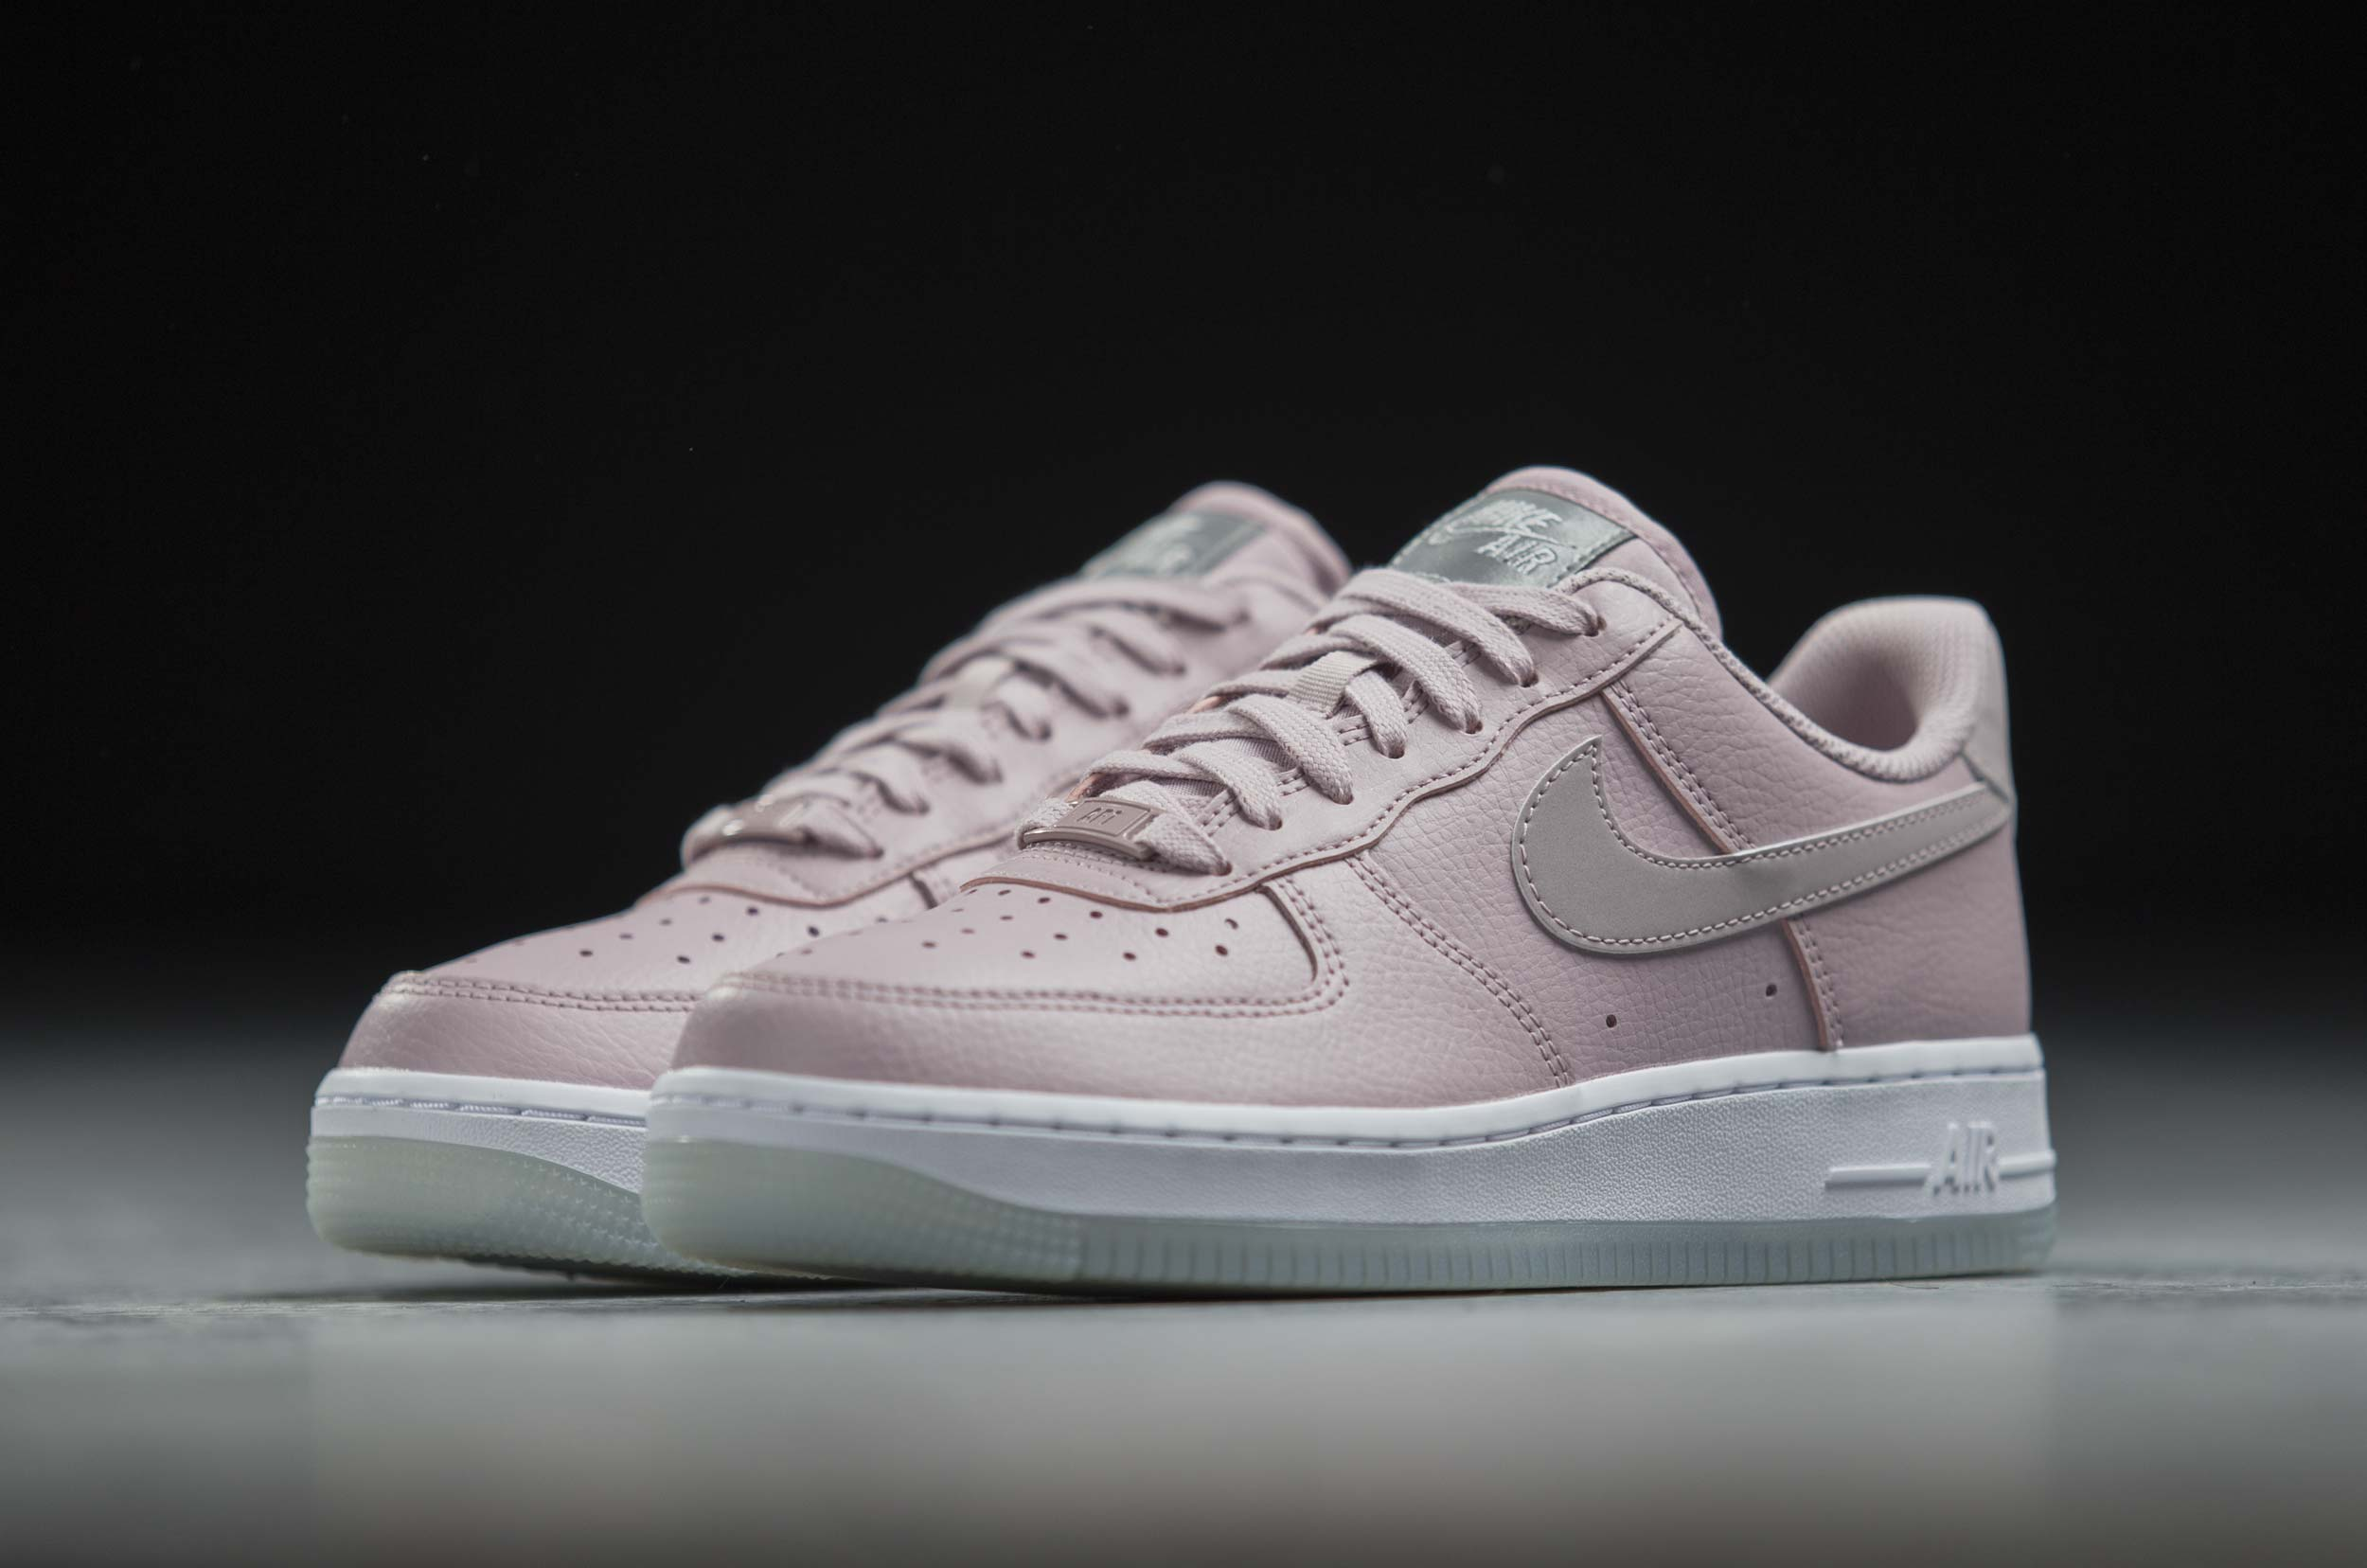 NIKE AIR FORCE 1 '07 ESSENTIAL AO2132-500 Ροζ